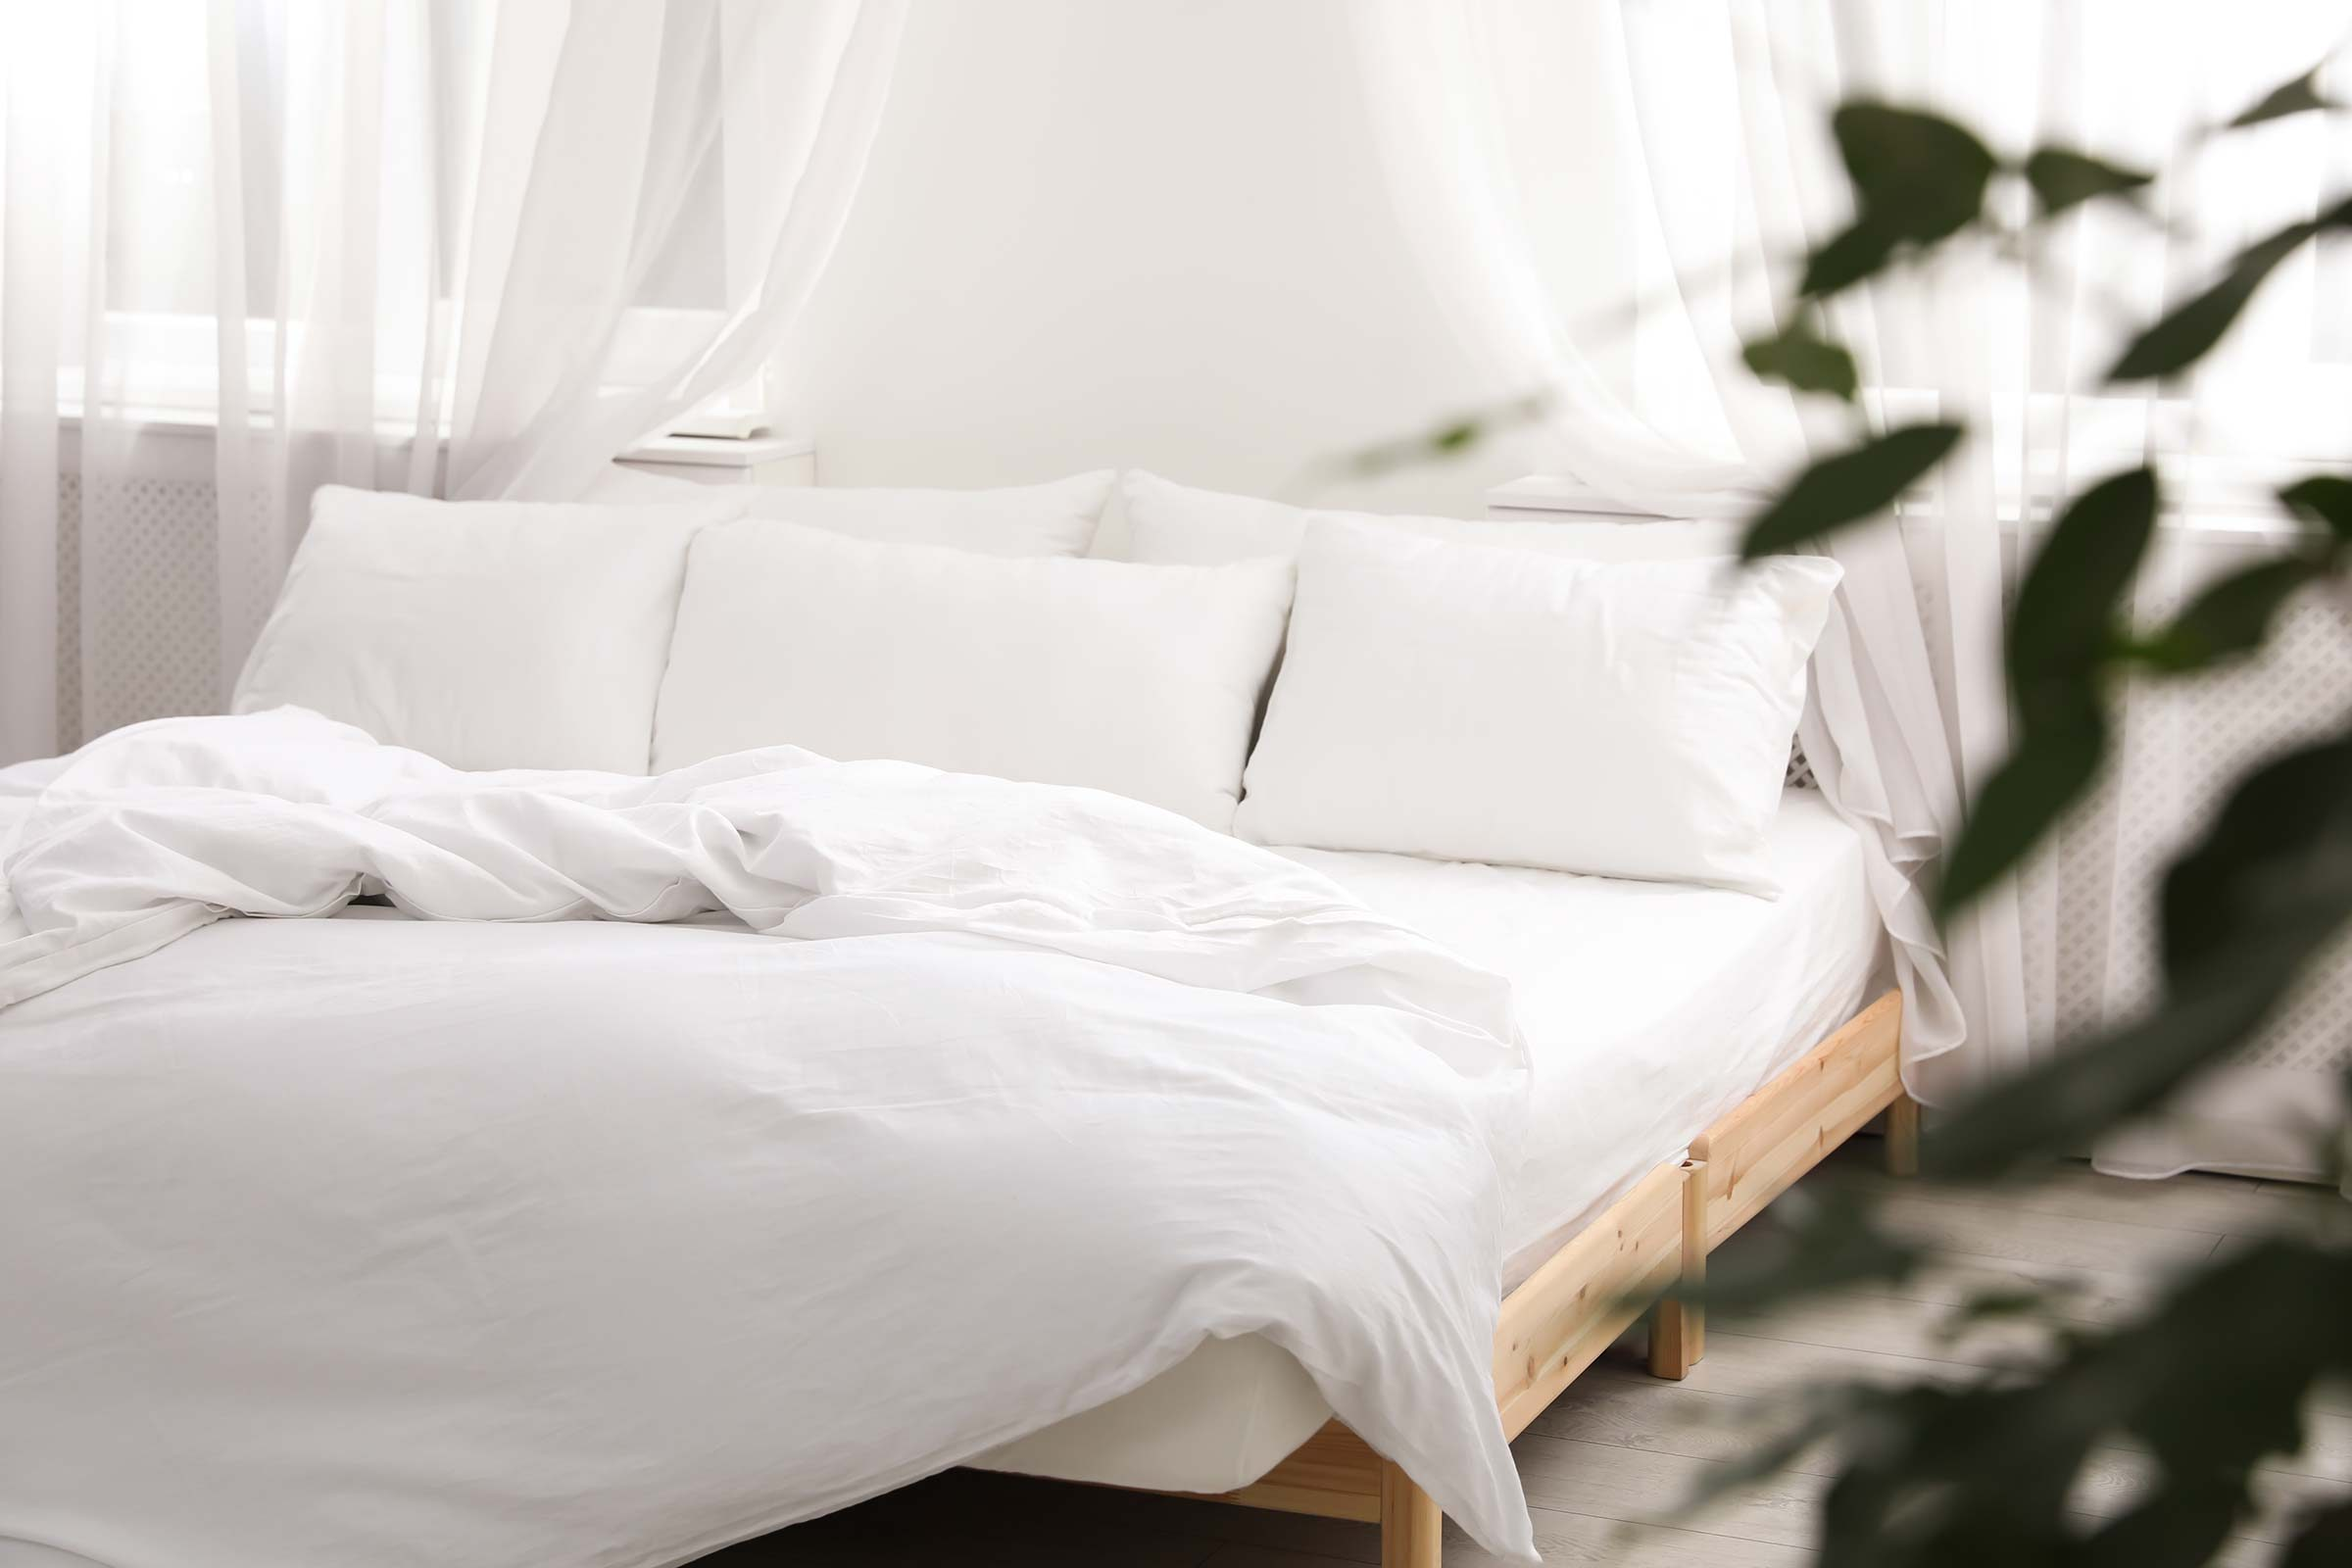 an unmade bed with white linens